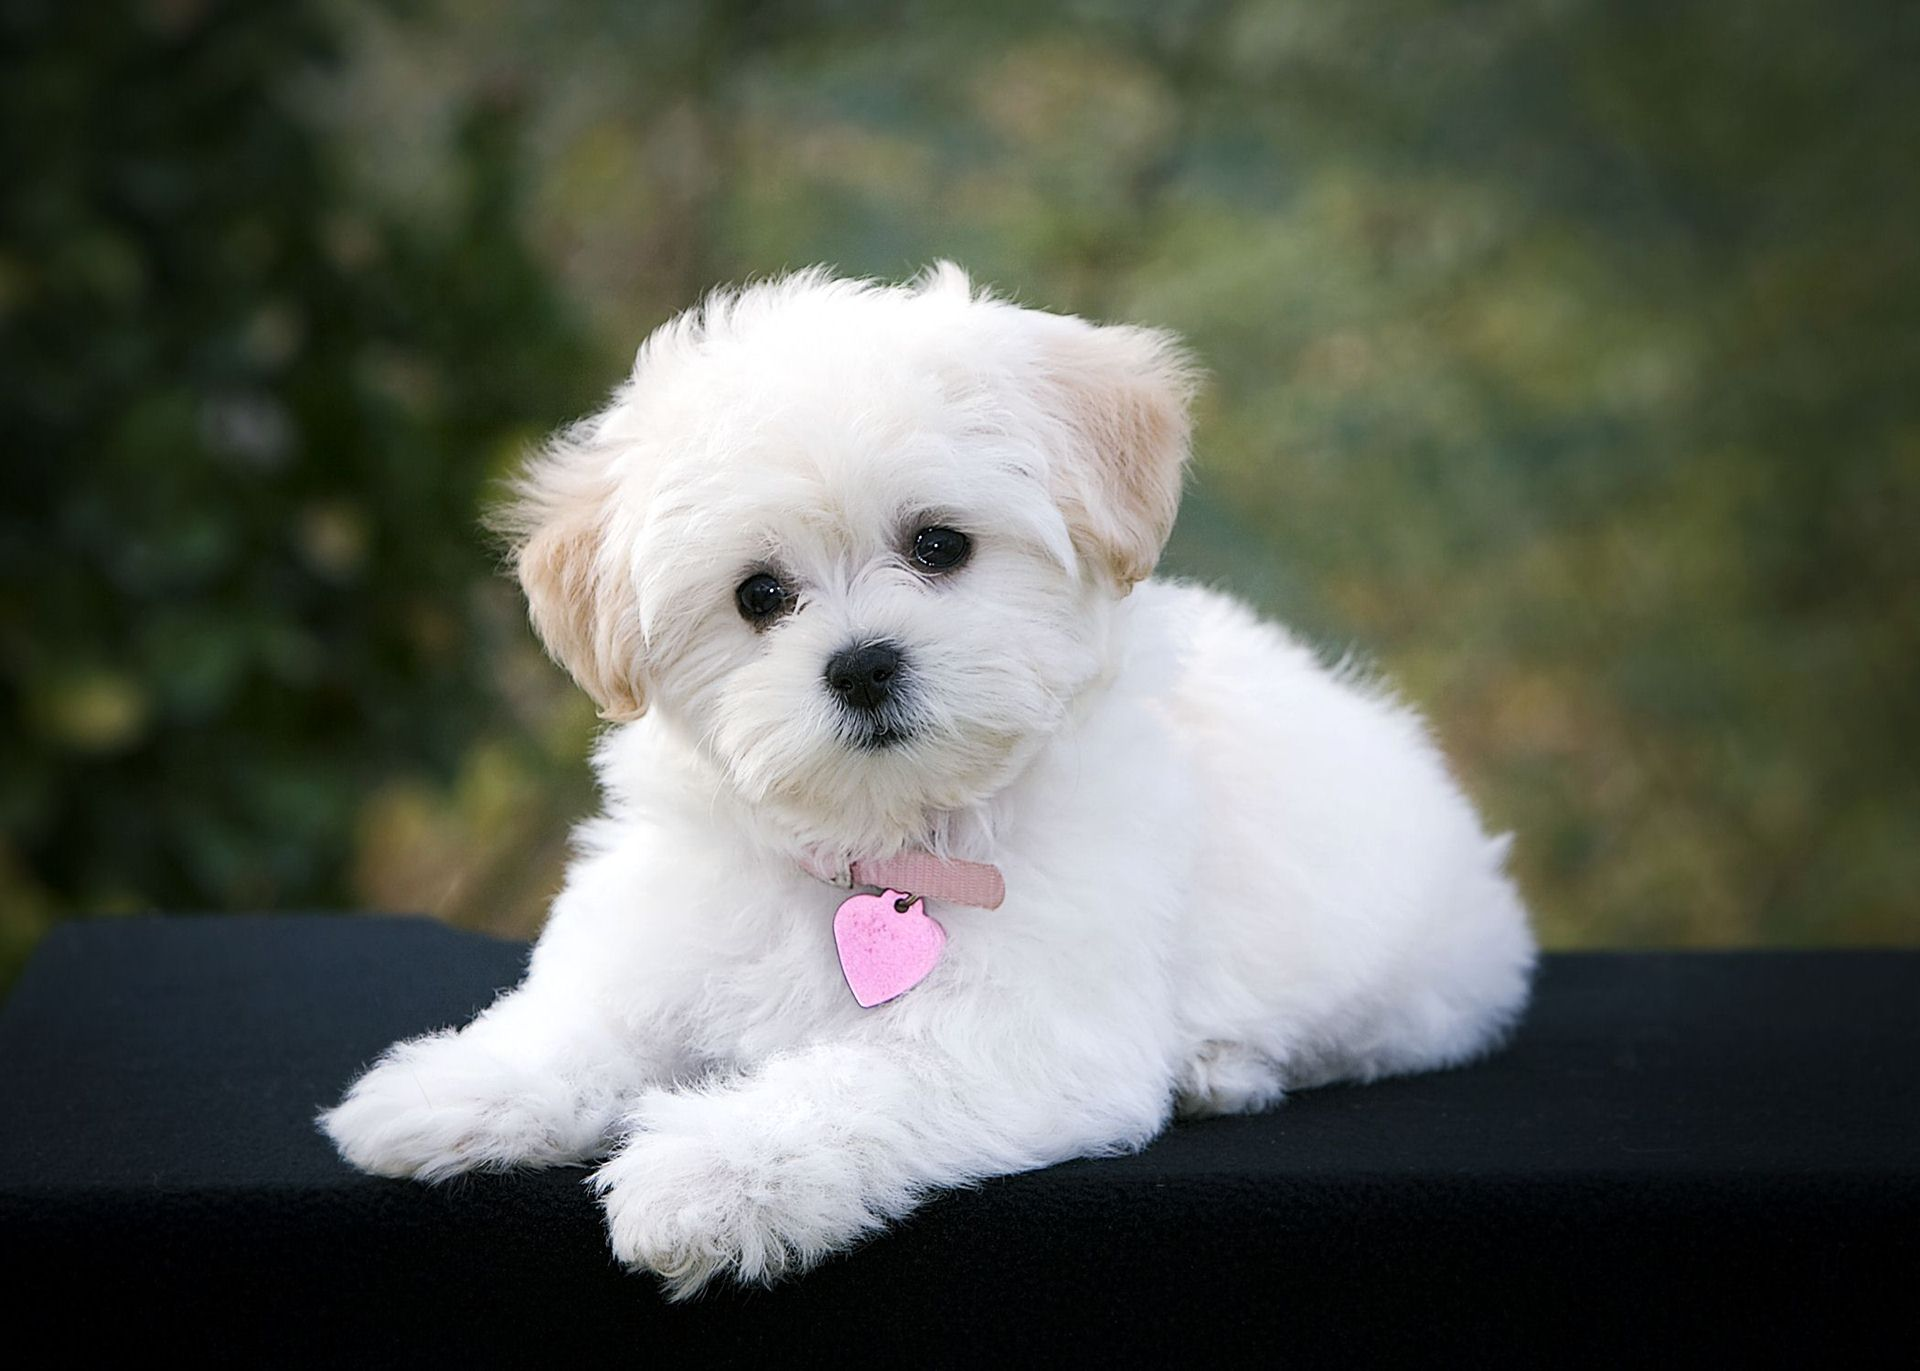 Poodle puppies wallpapers